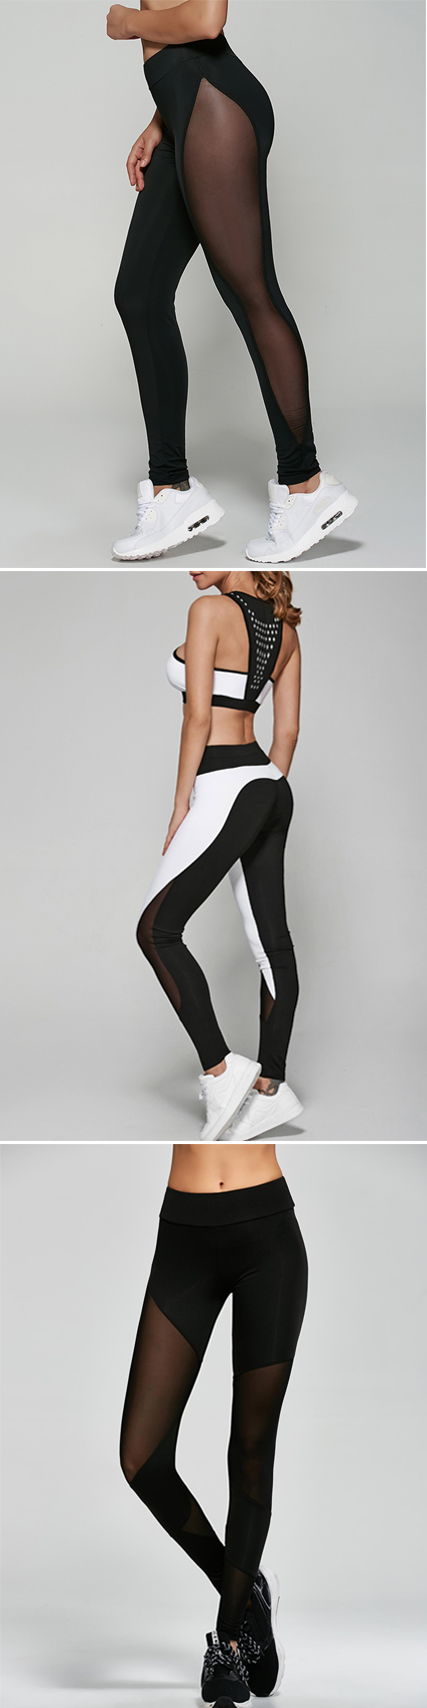 activewear,activewear women,activewear outfits,activewear fashion,active wear,sports clothing,fitness,health fitness #activewear